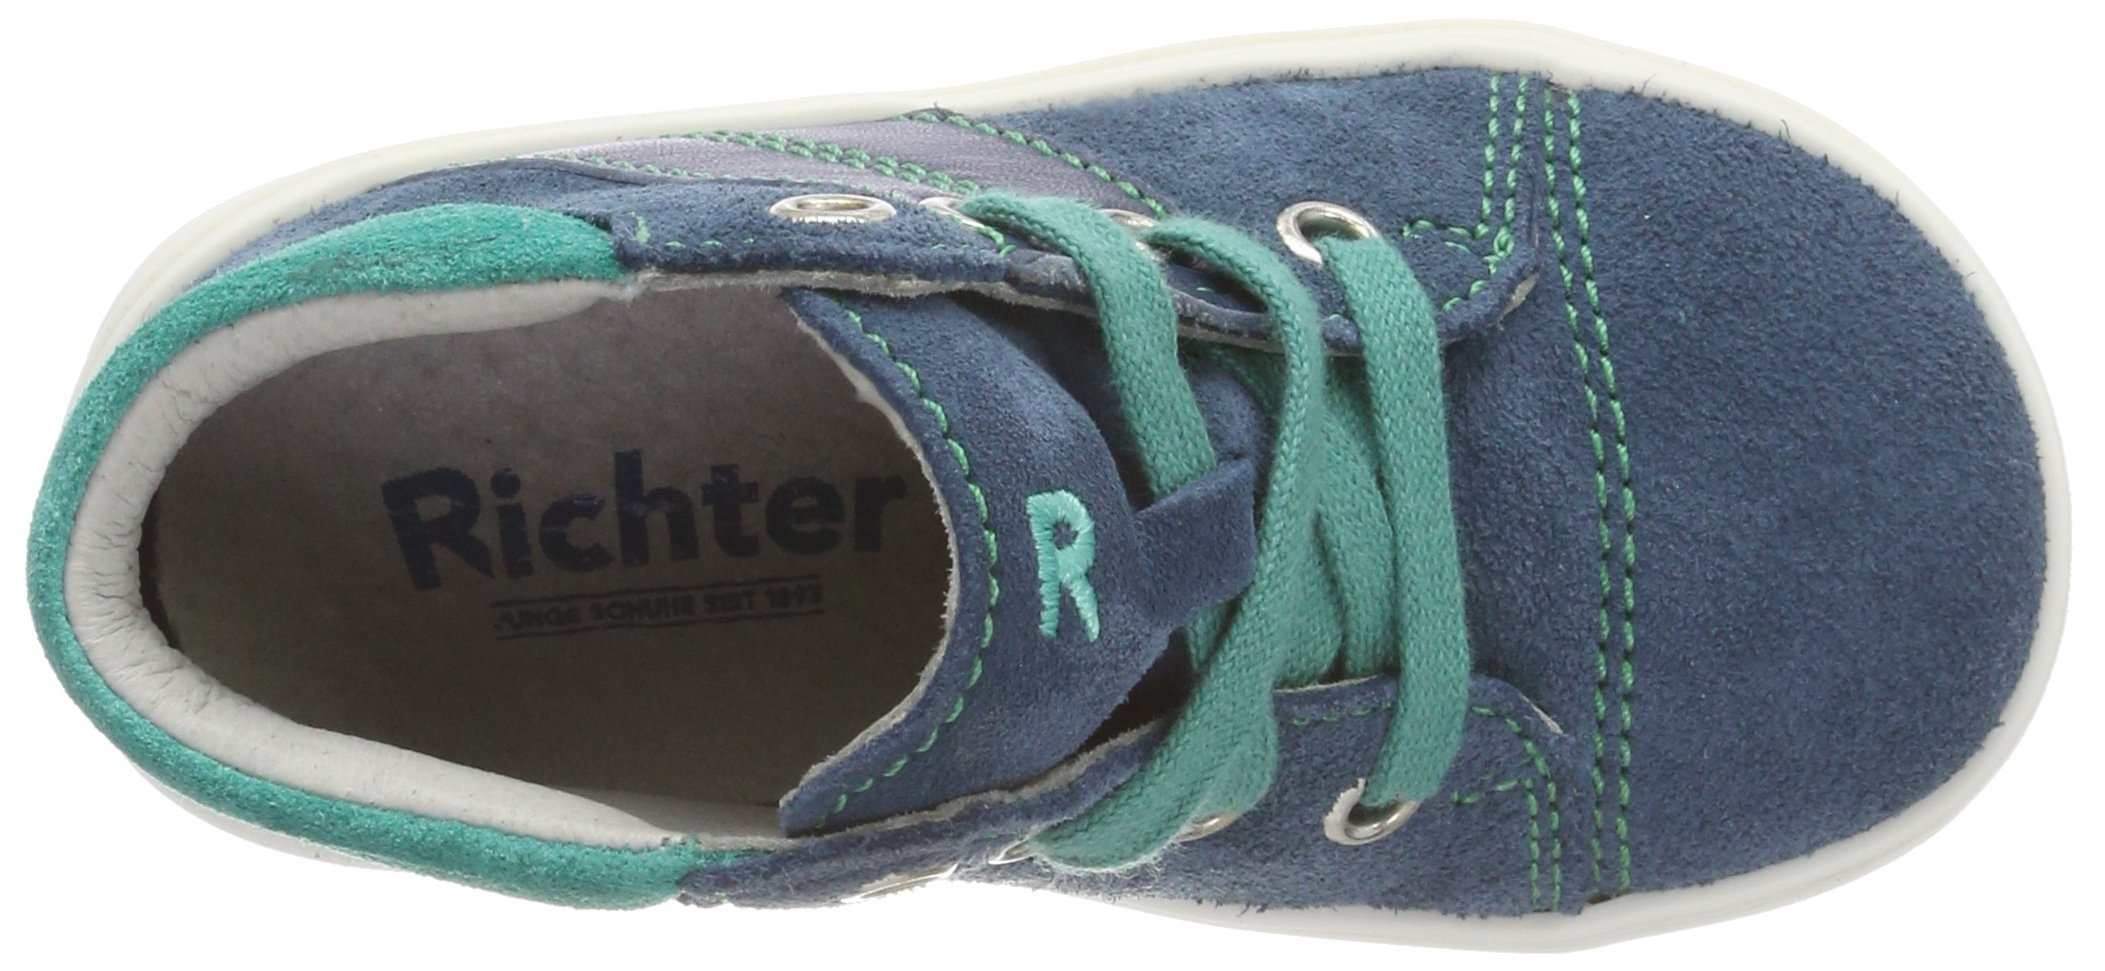 Richter Kinderschuhe Boys' Jimmy Derbys, Blue (Pacific/Menta 6701), 7.5 UK by Richter Kinderschuhe (Image #7)